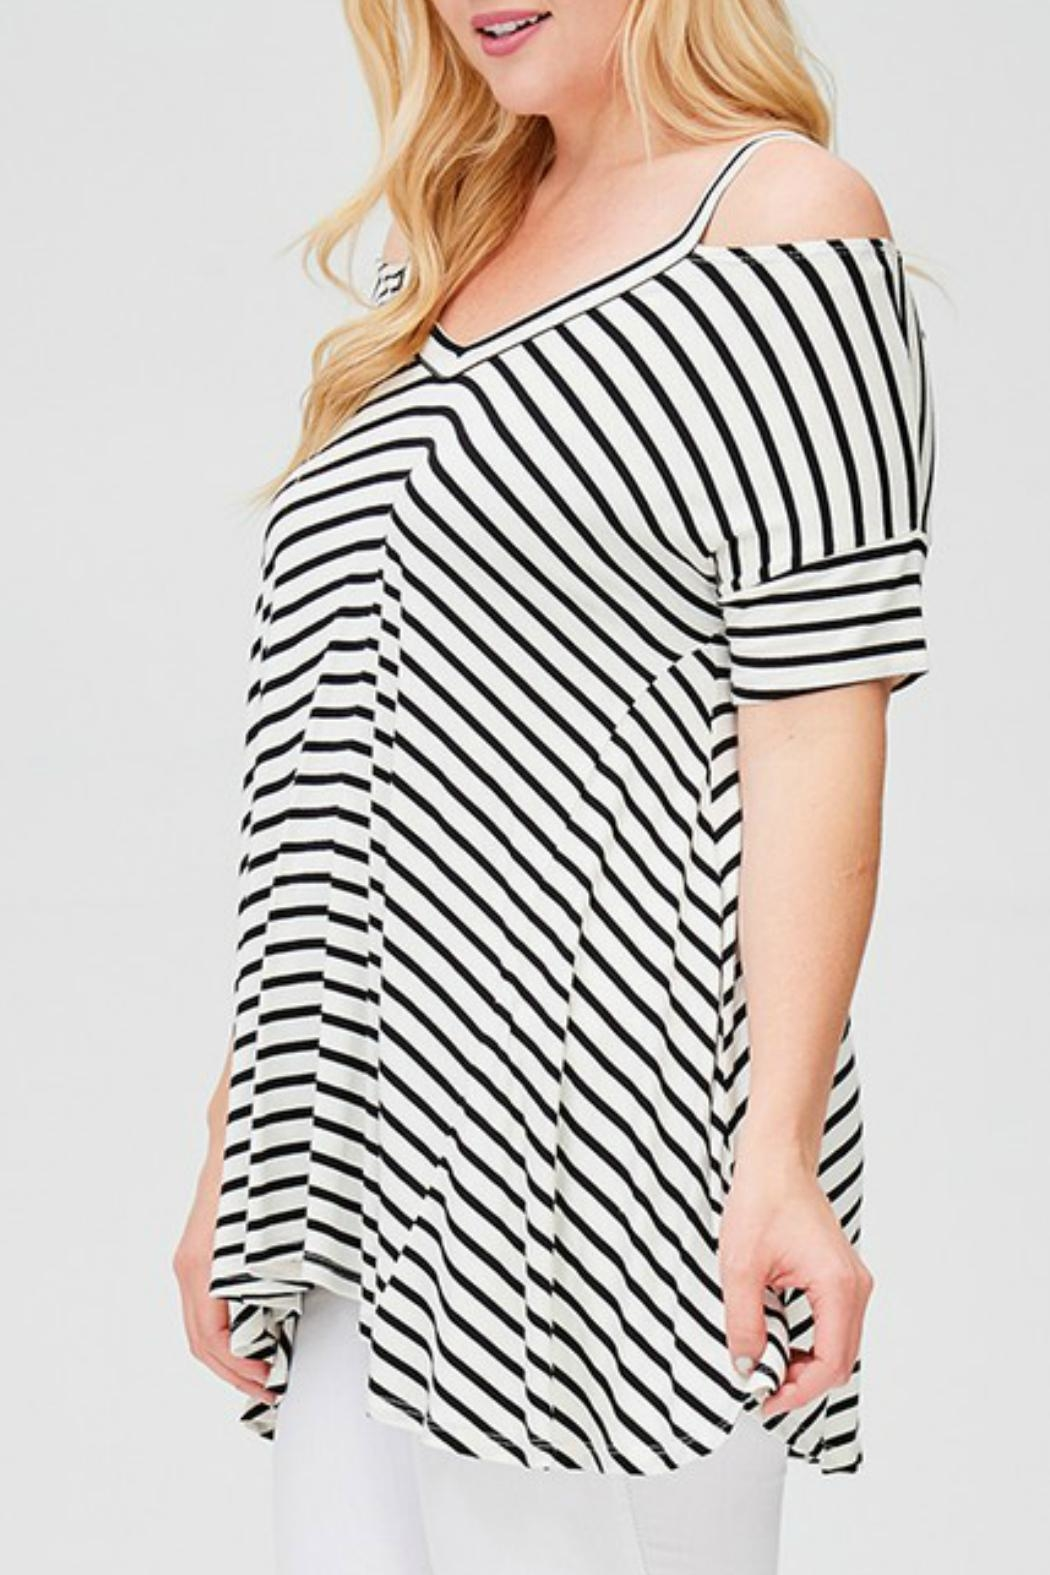 Faith Apparel Striped Open-Shoulder Top - Front Full Image